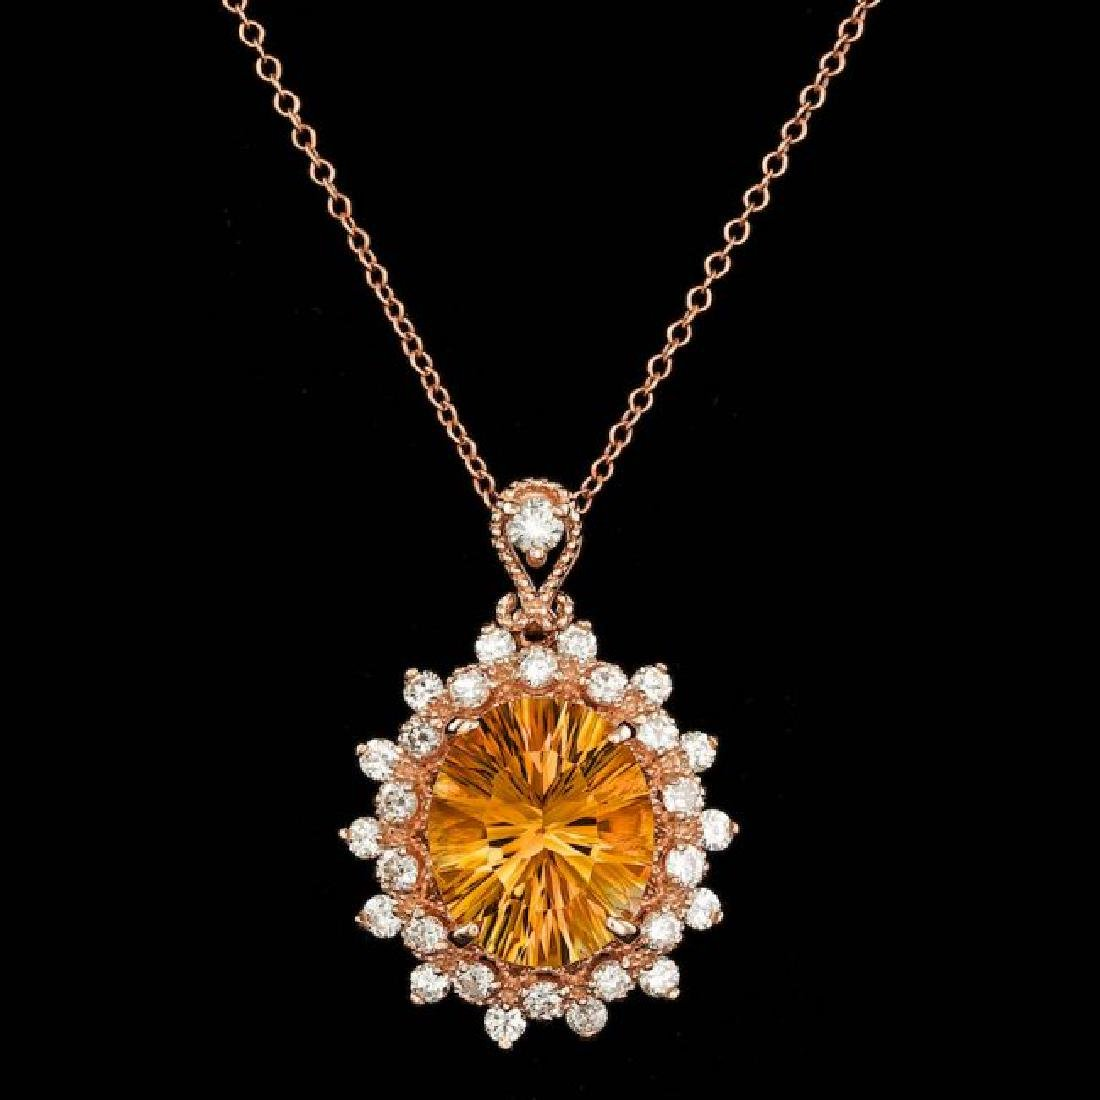 14k Gold 4.00ct Citrine 0.80ct Diamond Pendant